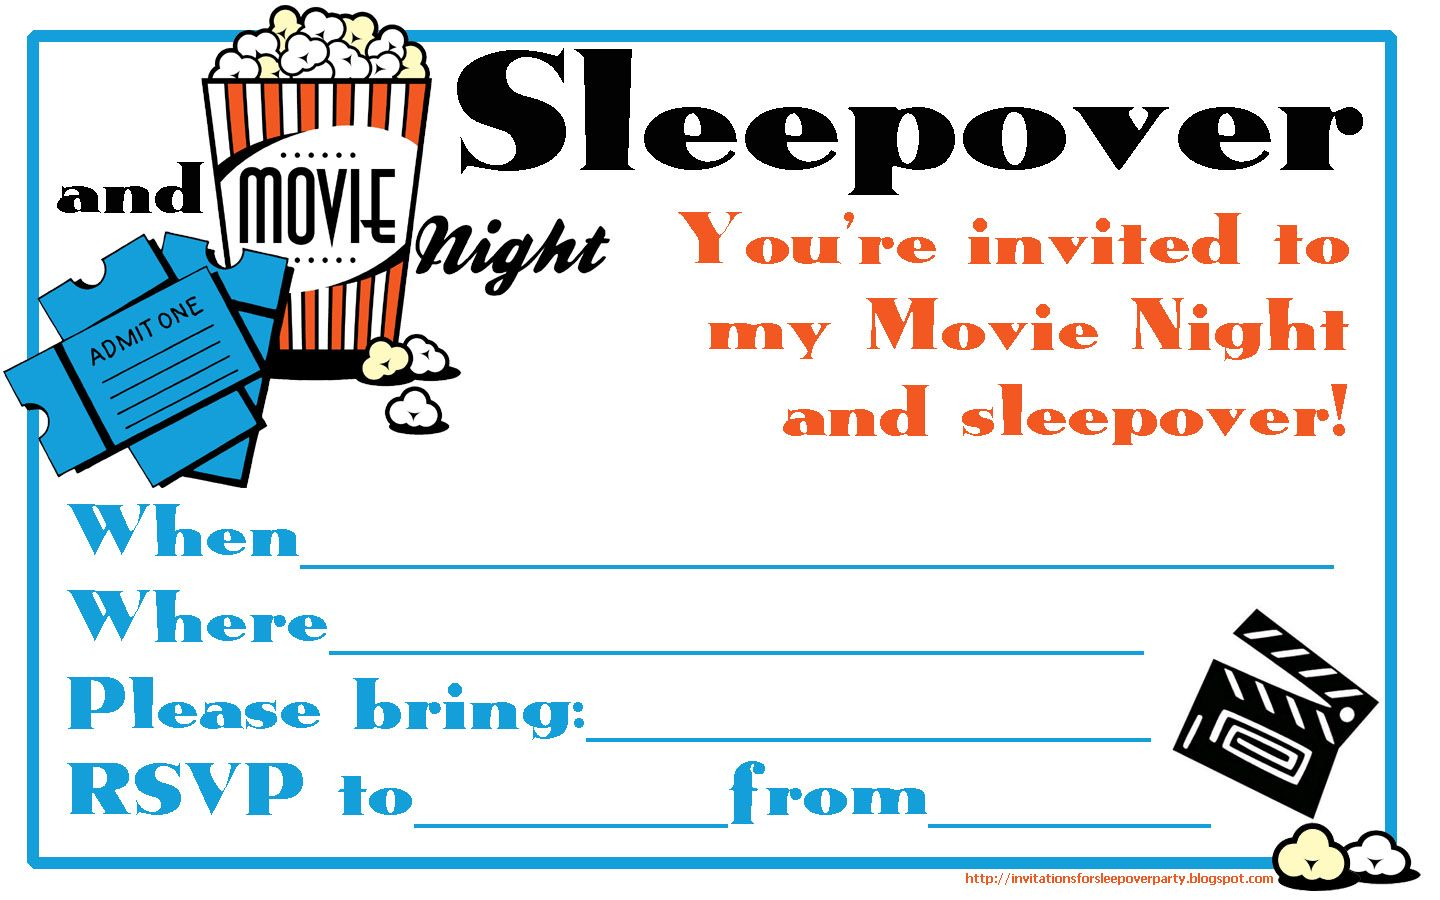 Fill the blanks on this movie night and sleepover invitation and send it to your friends! Just ...